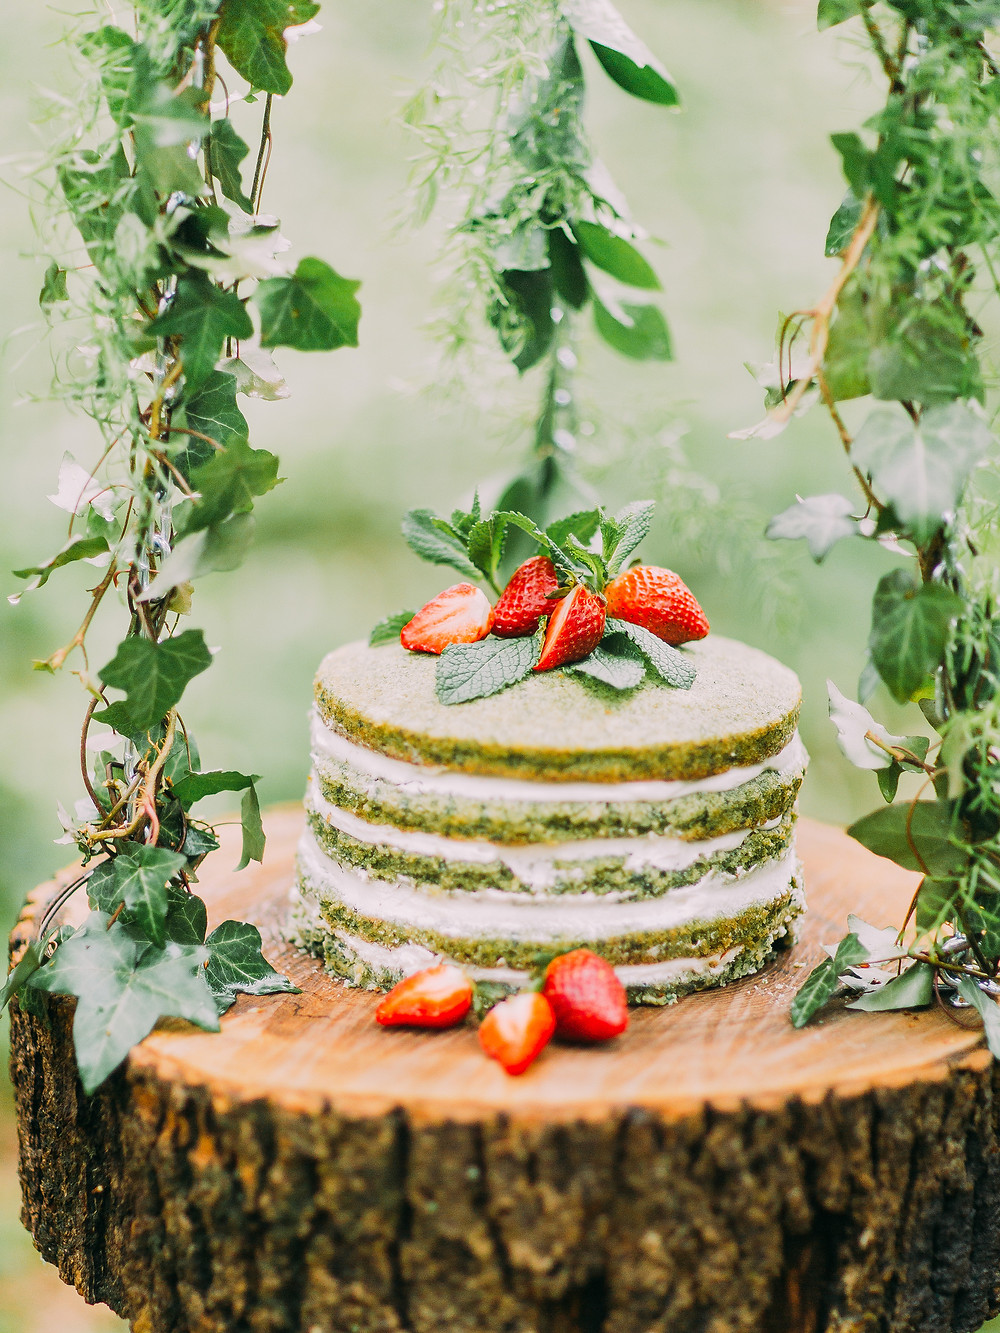 Country Wedding Cake - Our Italian Fairytale - Get Married In Italy